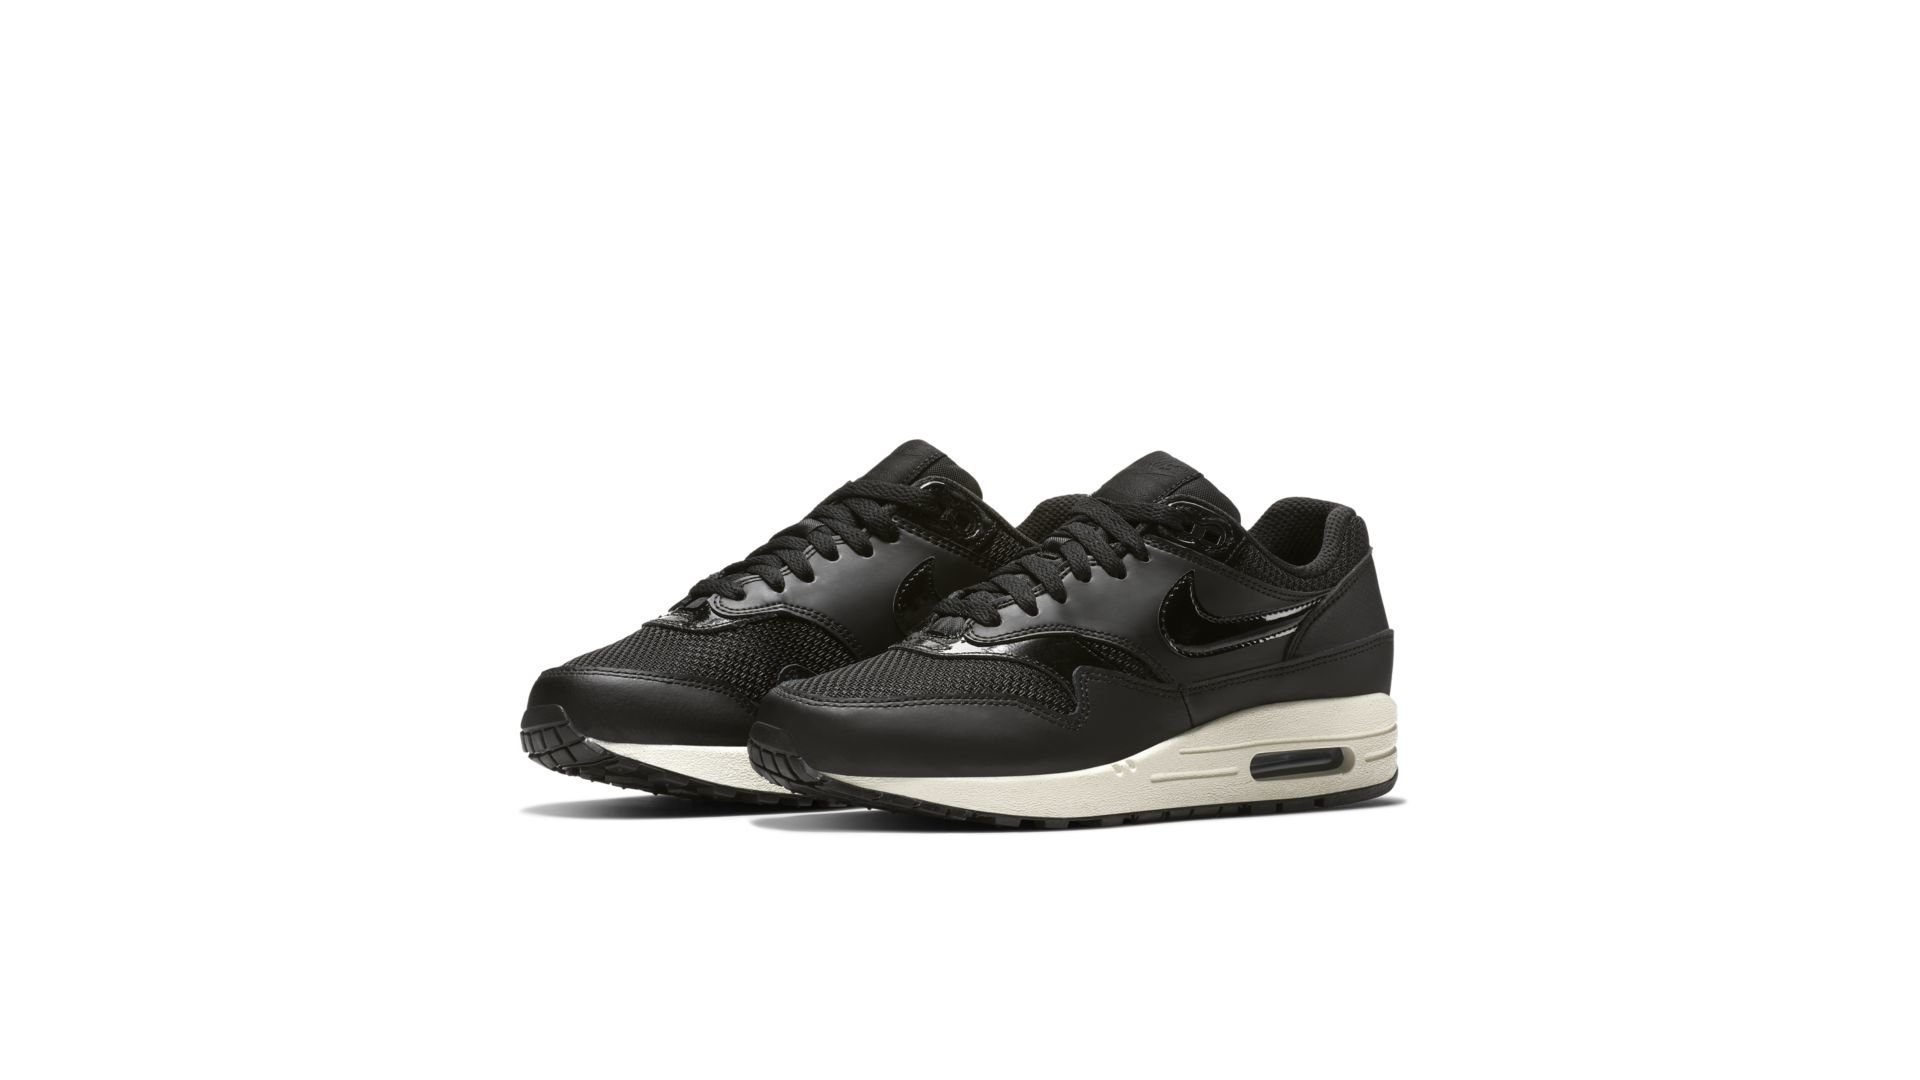 Nike WMNS Air Max 1 'Black Pattent' (319986 039)